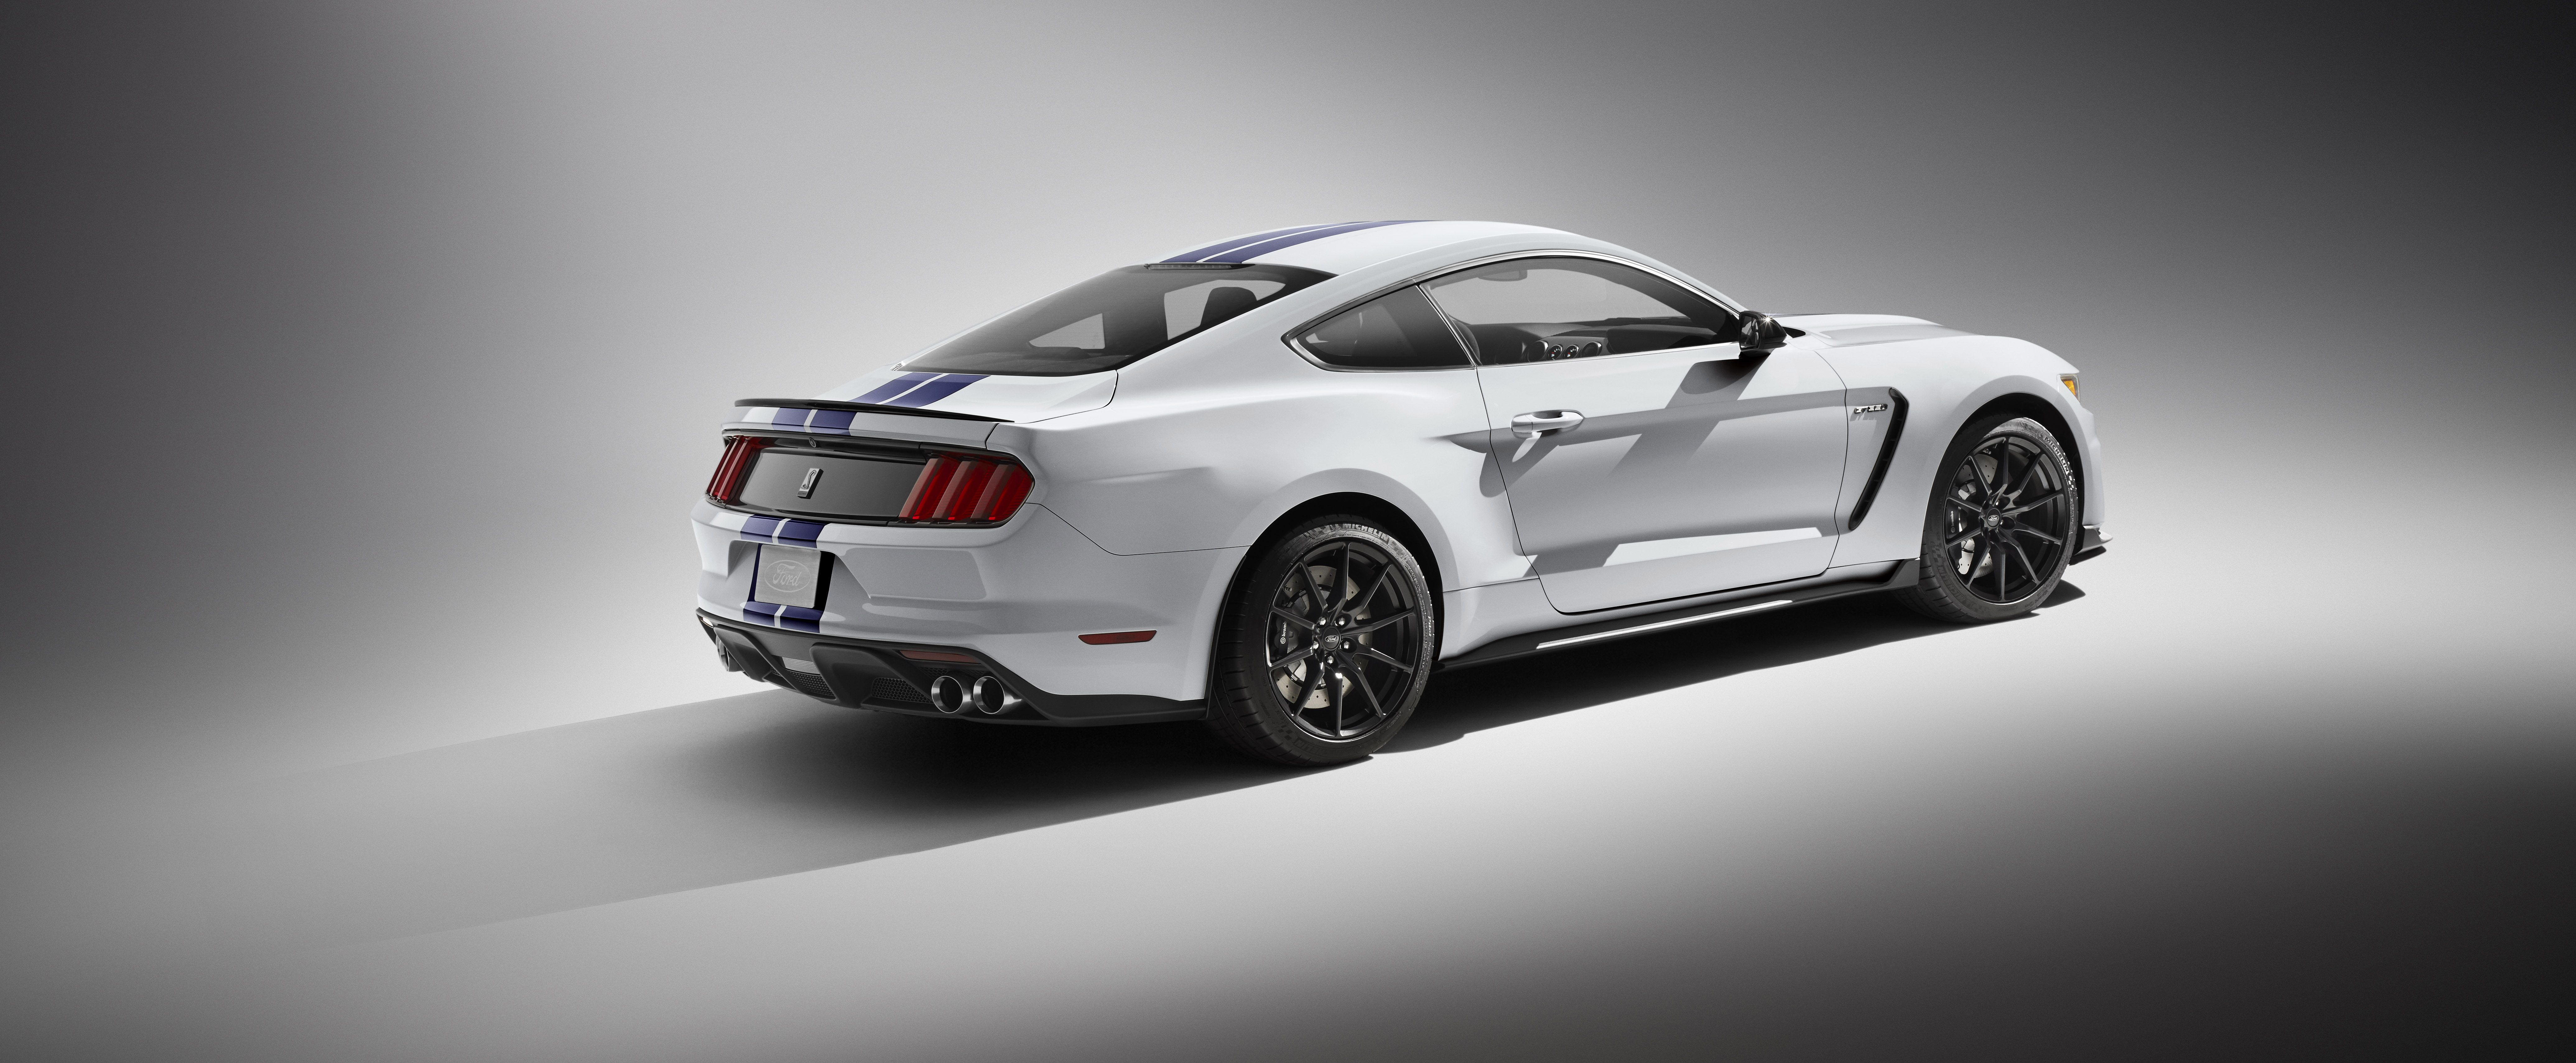 Shelby Gt350 Mustang In White With Blue Stripes Is 500 Hp Of